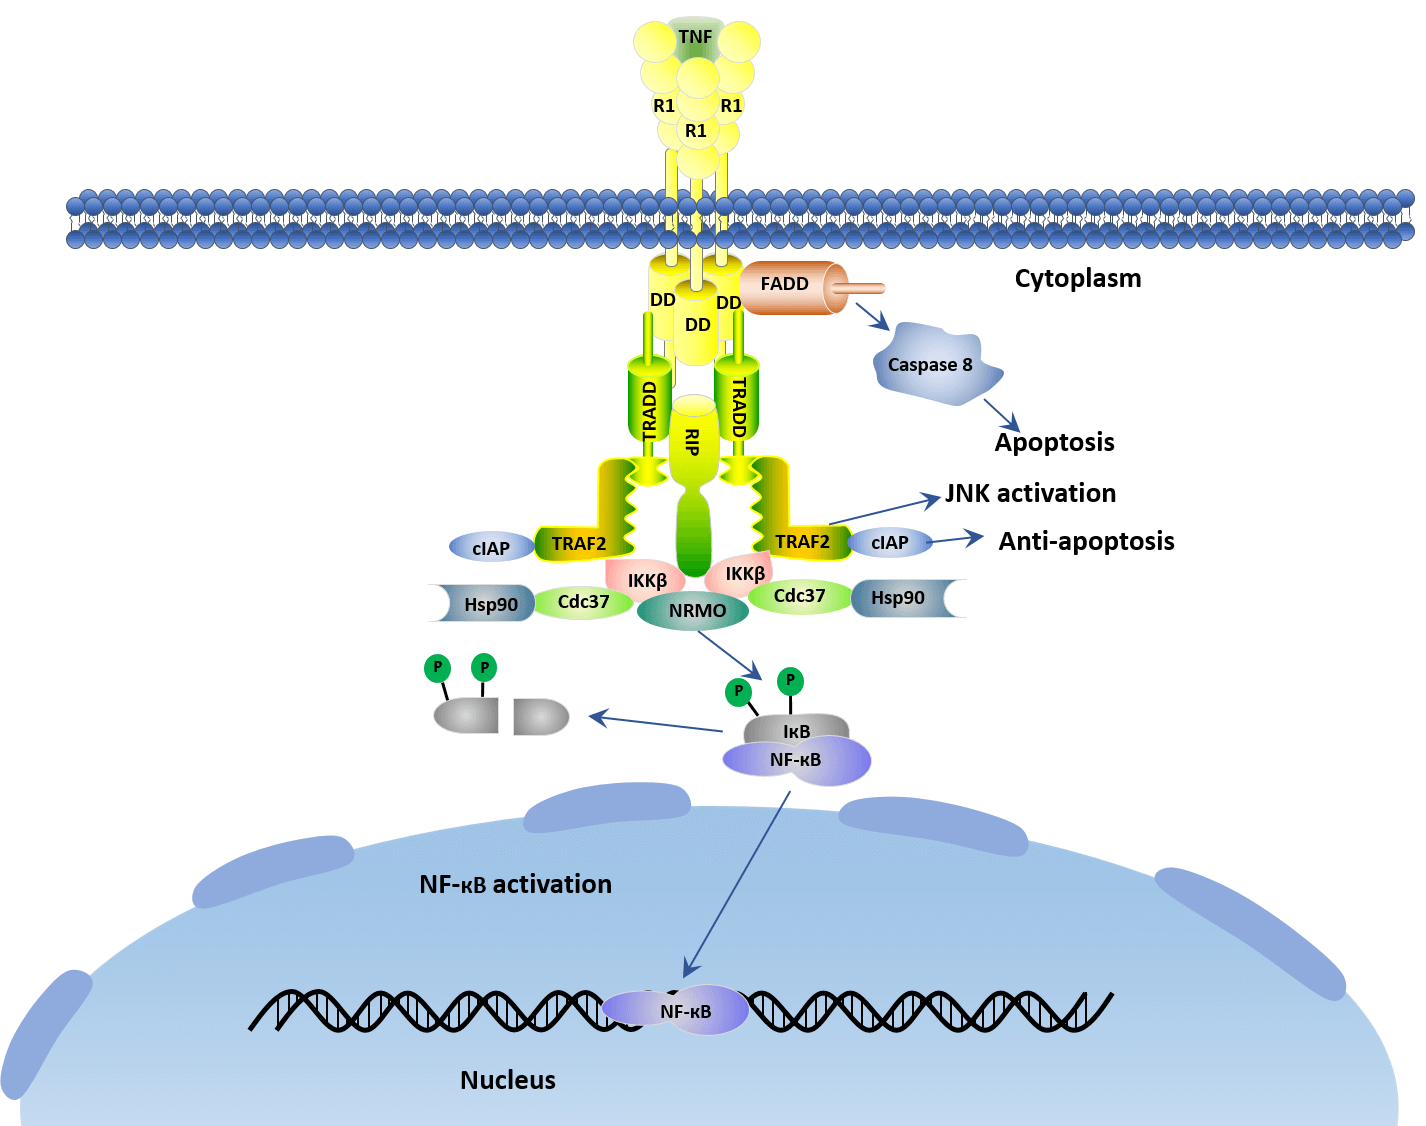 What A Paradoxical TNF Signaling Pathway-Based on Different Receptors